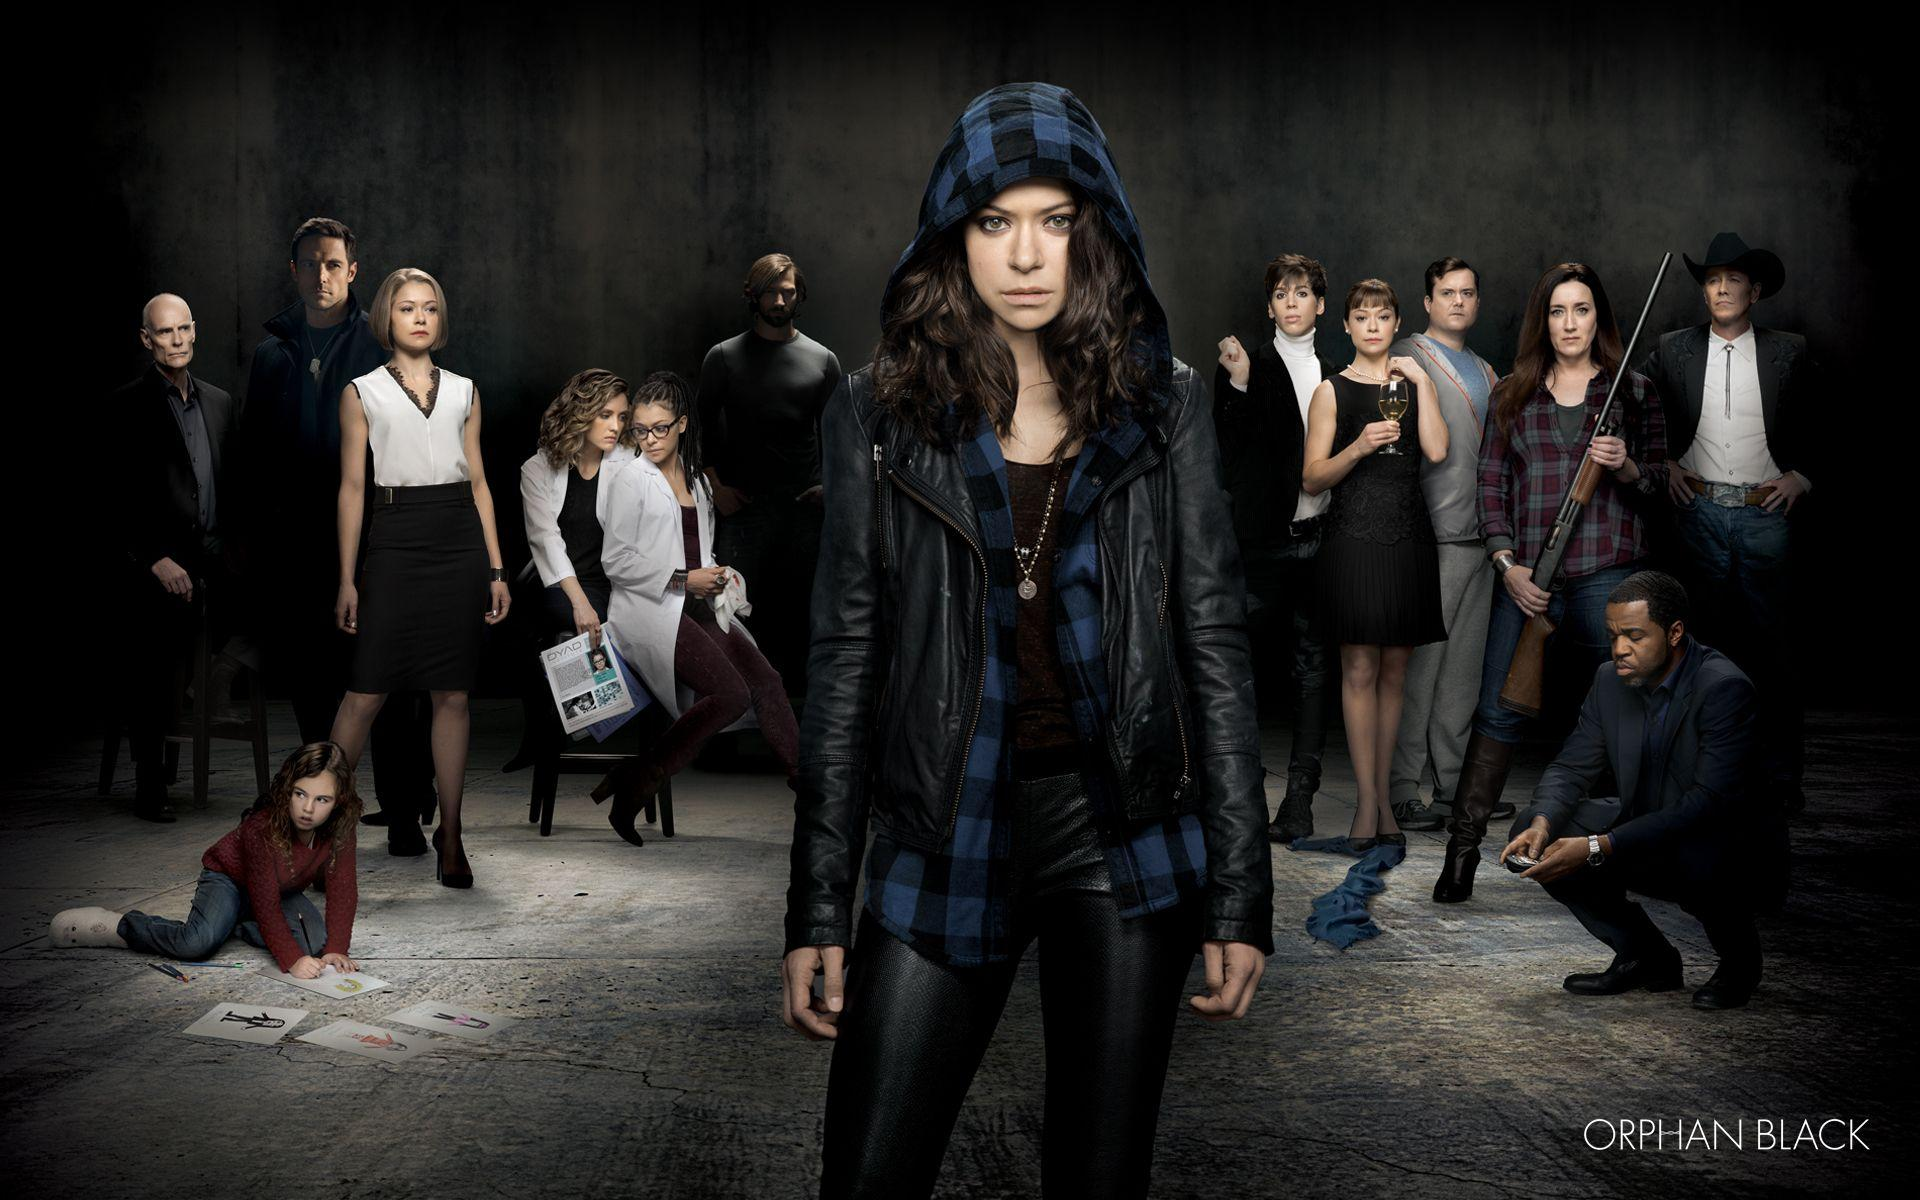 Orphan Black Wallpapers | BBC America